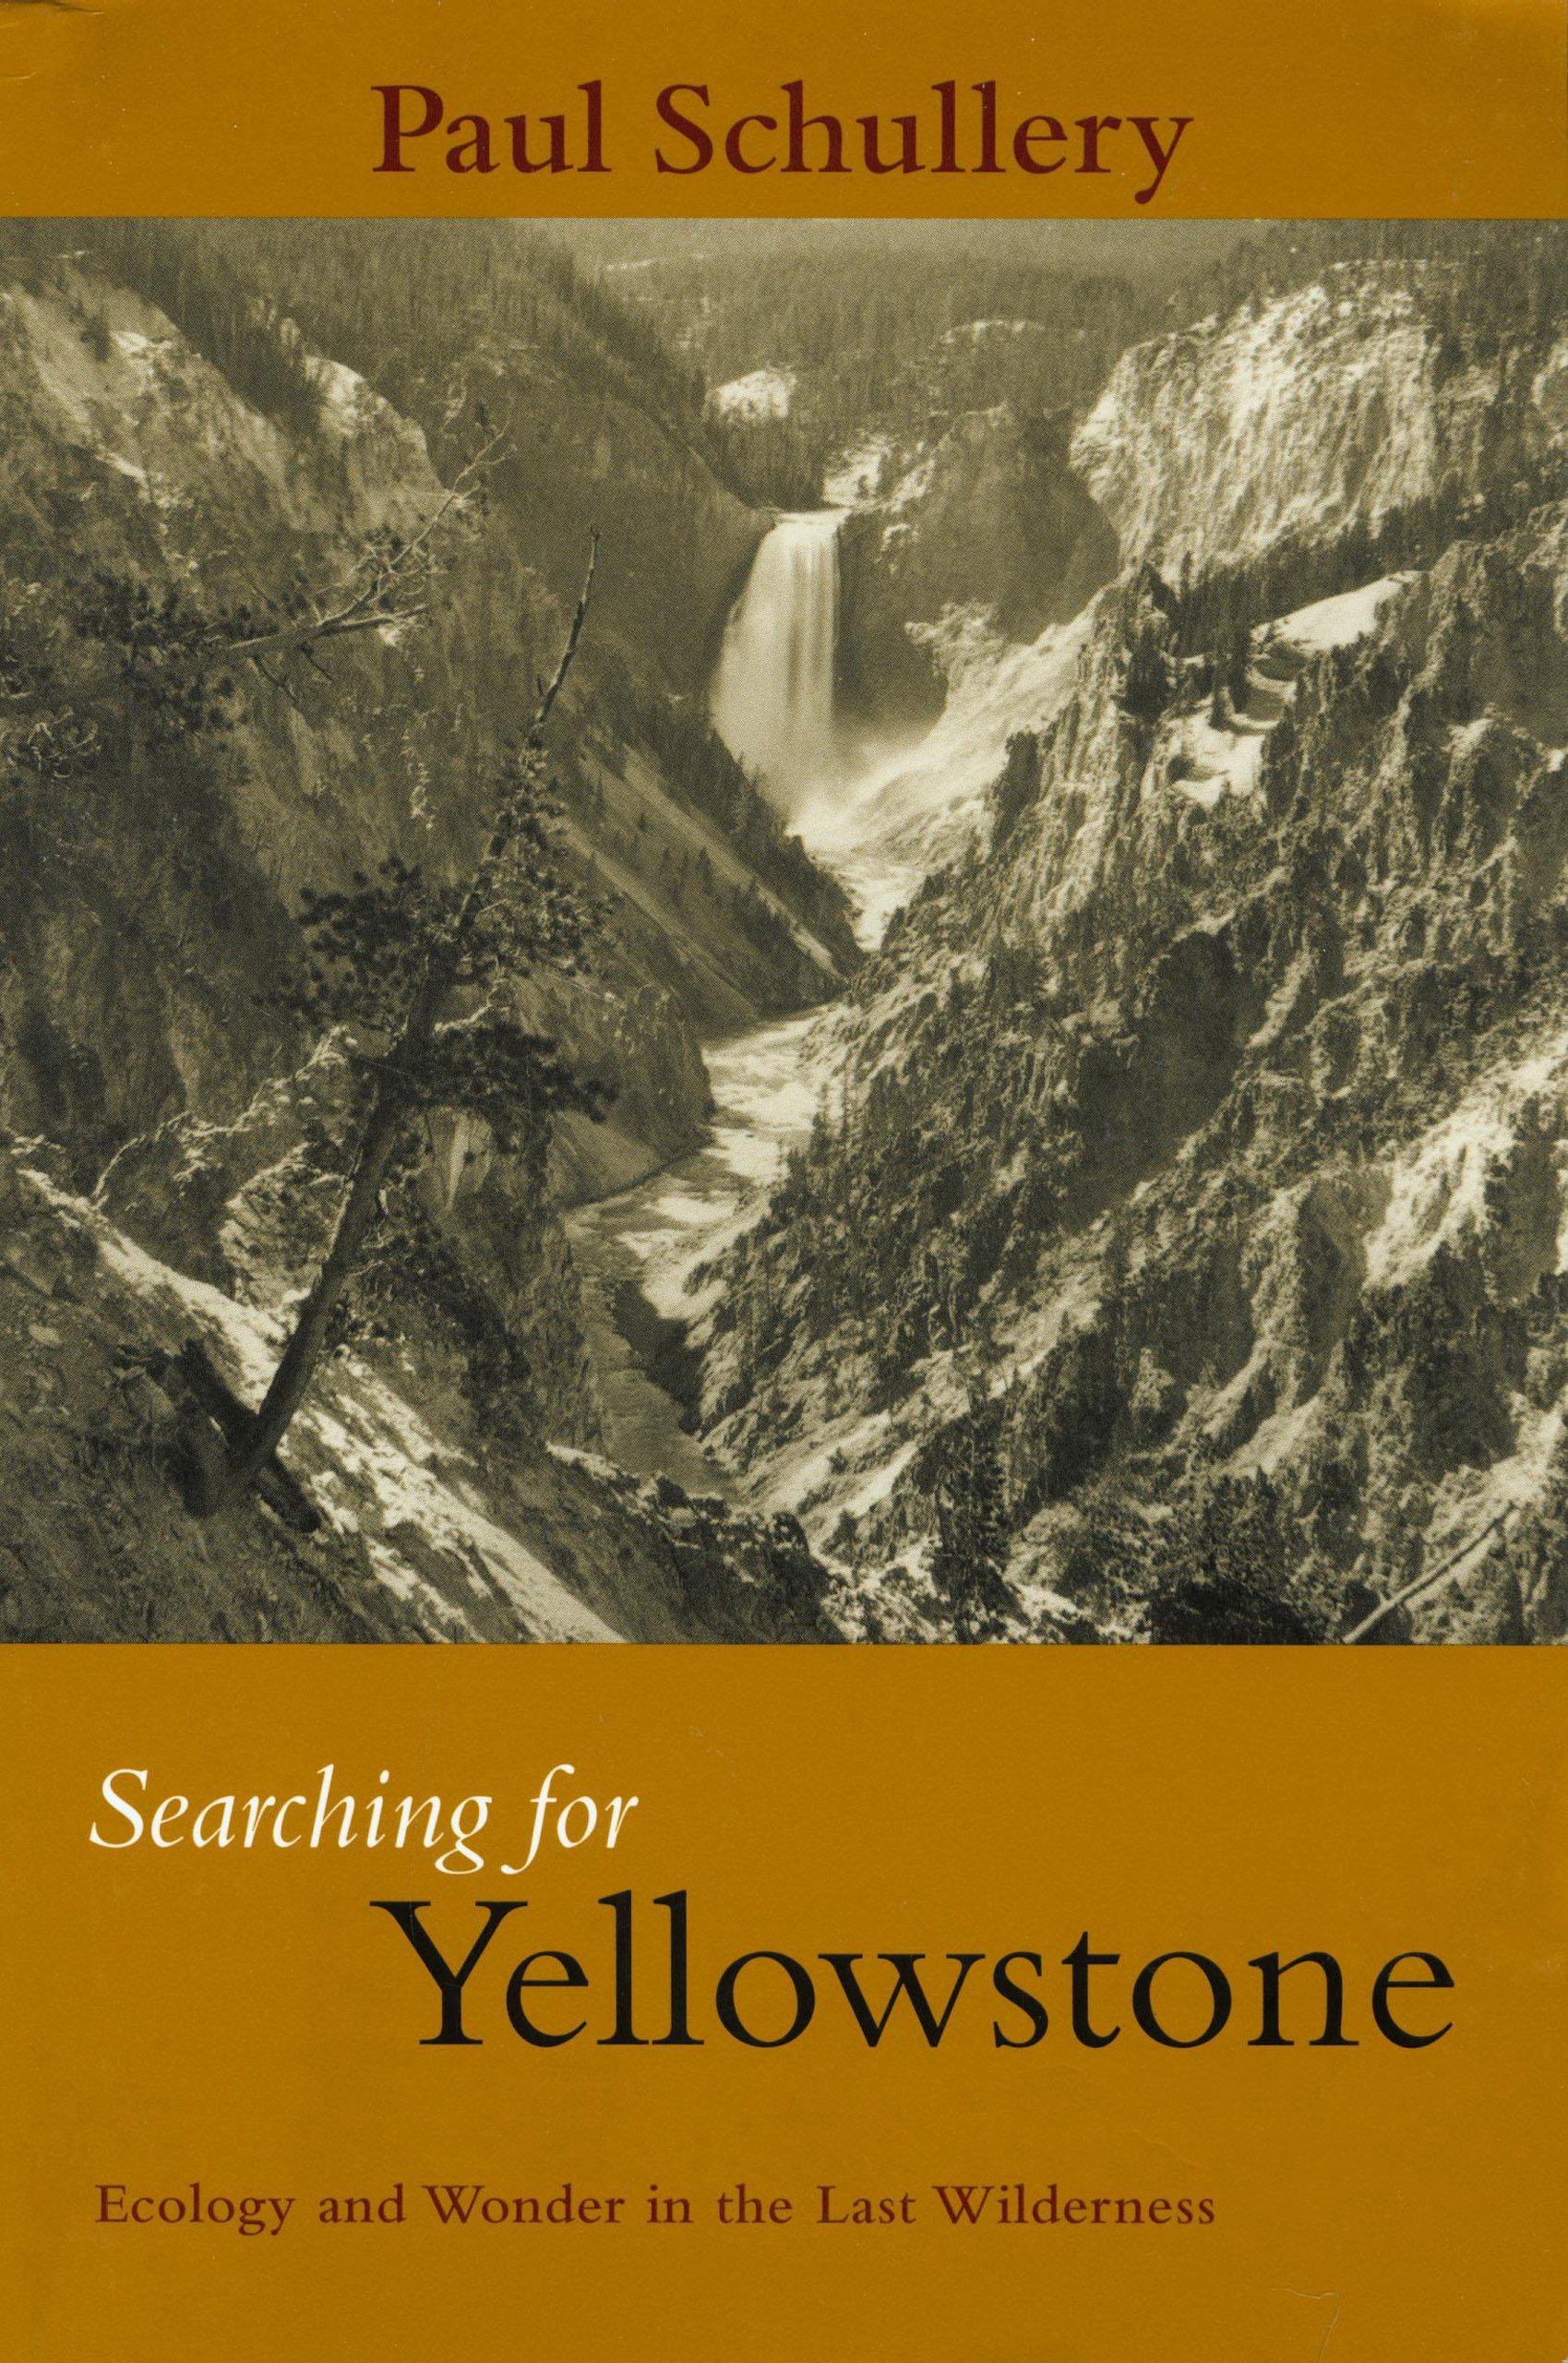 Searching for Yellowstone: Ecology and Wonder in the Last Wilderness PDF